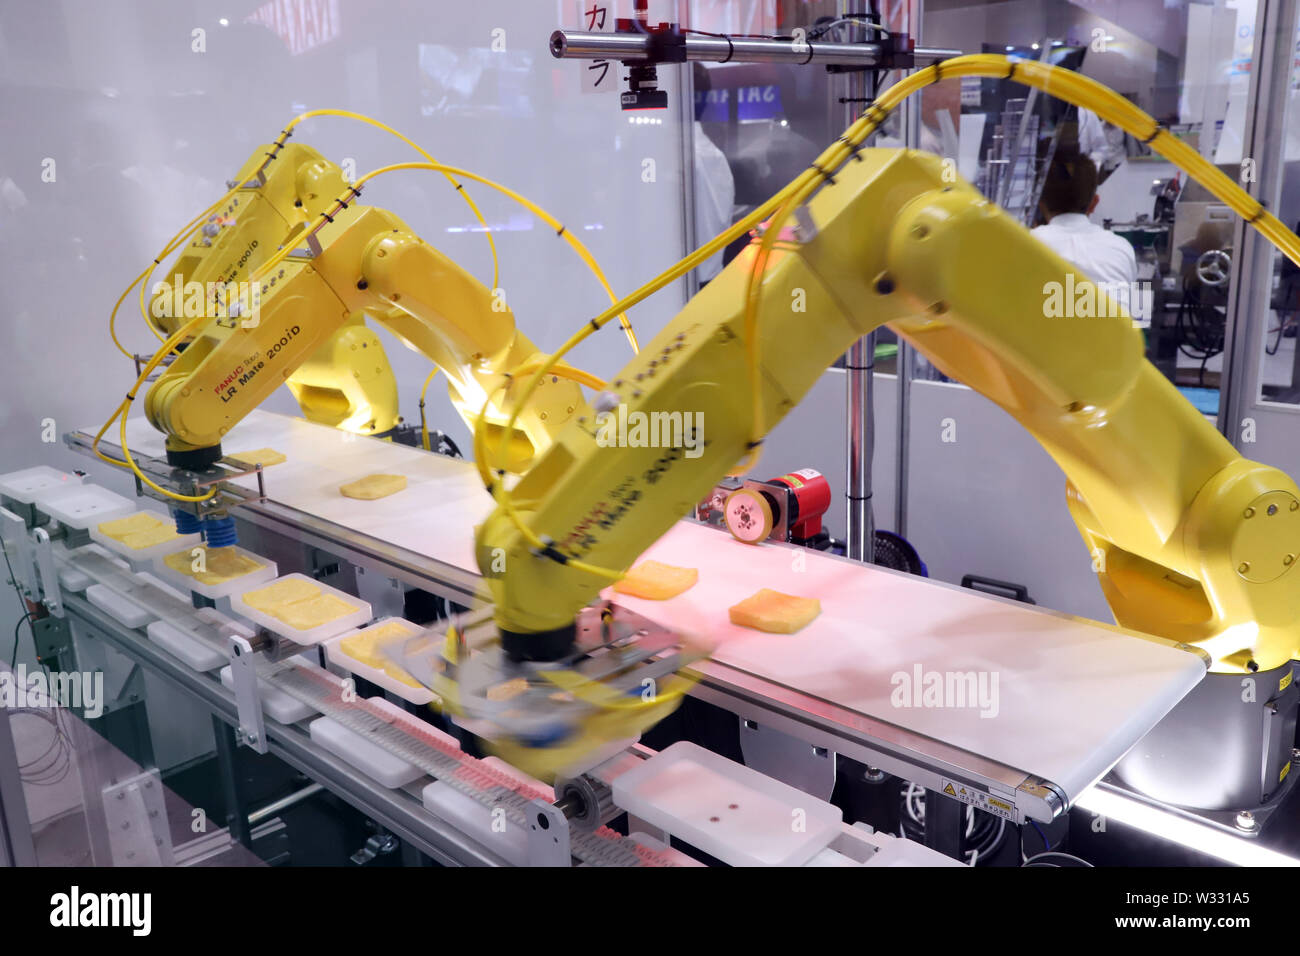 Tokyo, Japan  11th July, 2019  Japanese robot maker Fanuc's arm